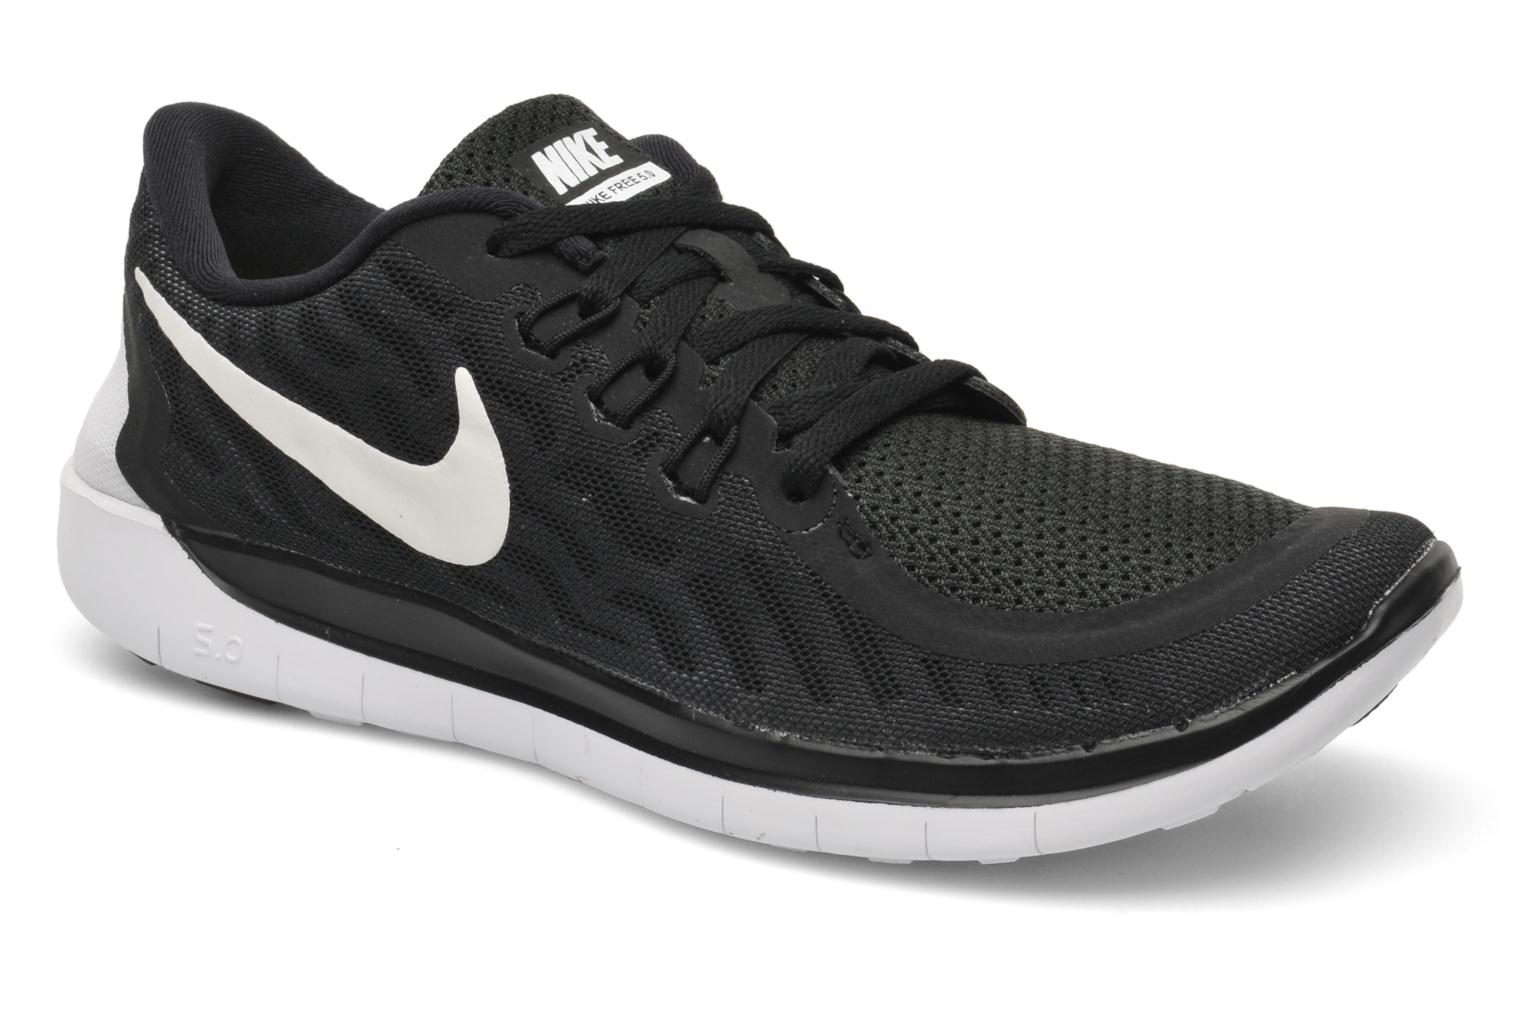 NIKE FREE 5.0 (GS) BLACK/WHITE-DARK GREY-CL GREY